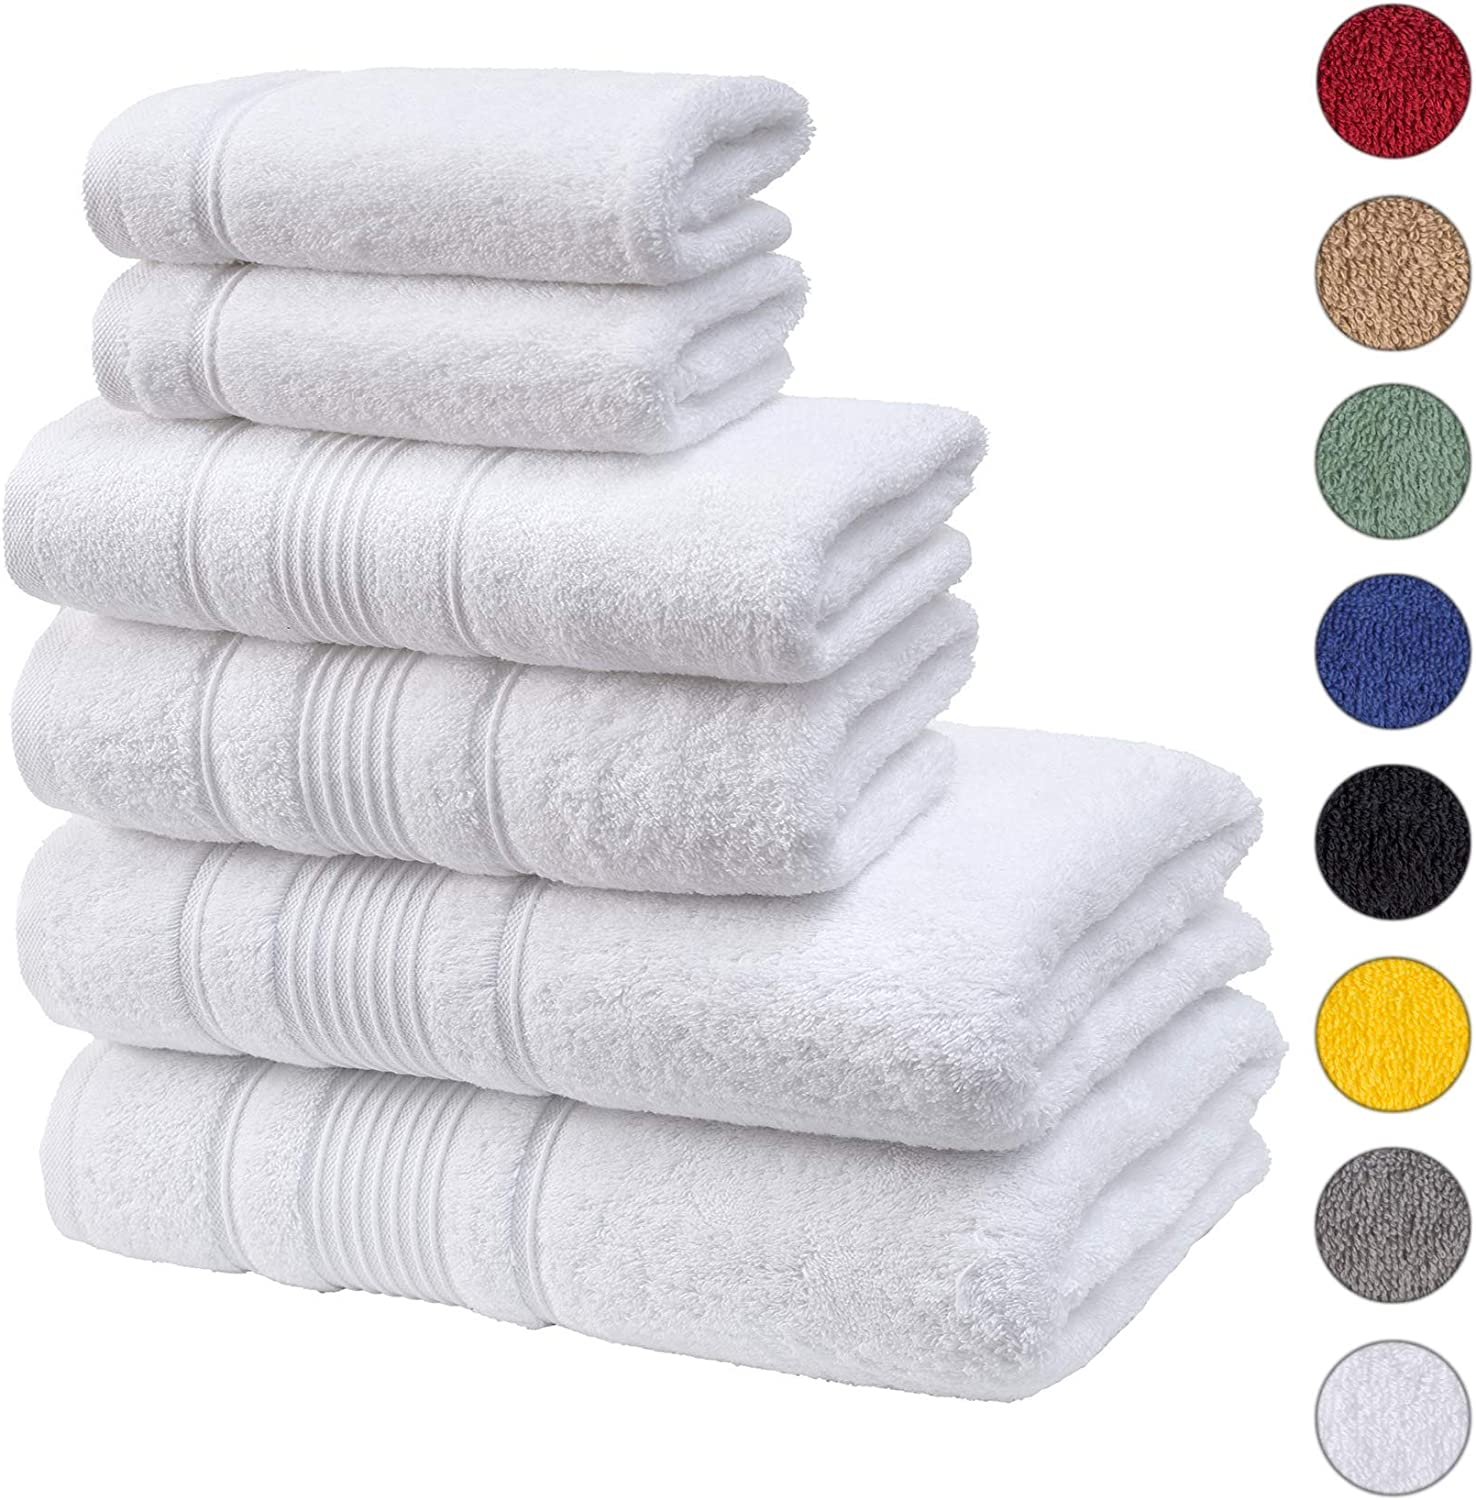 LUXURY 100/% COMBED COTTON 500 GSM TOWELS HOTEL QUALITY HAND BATH TOWEL PACK OF 2